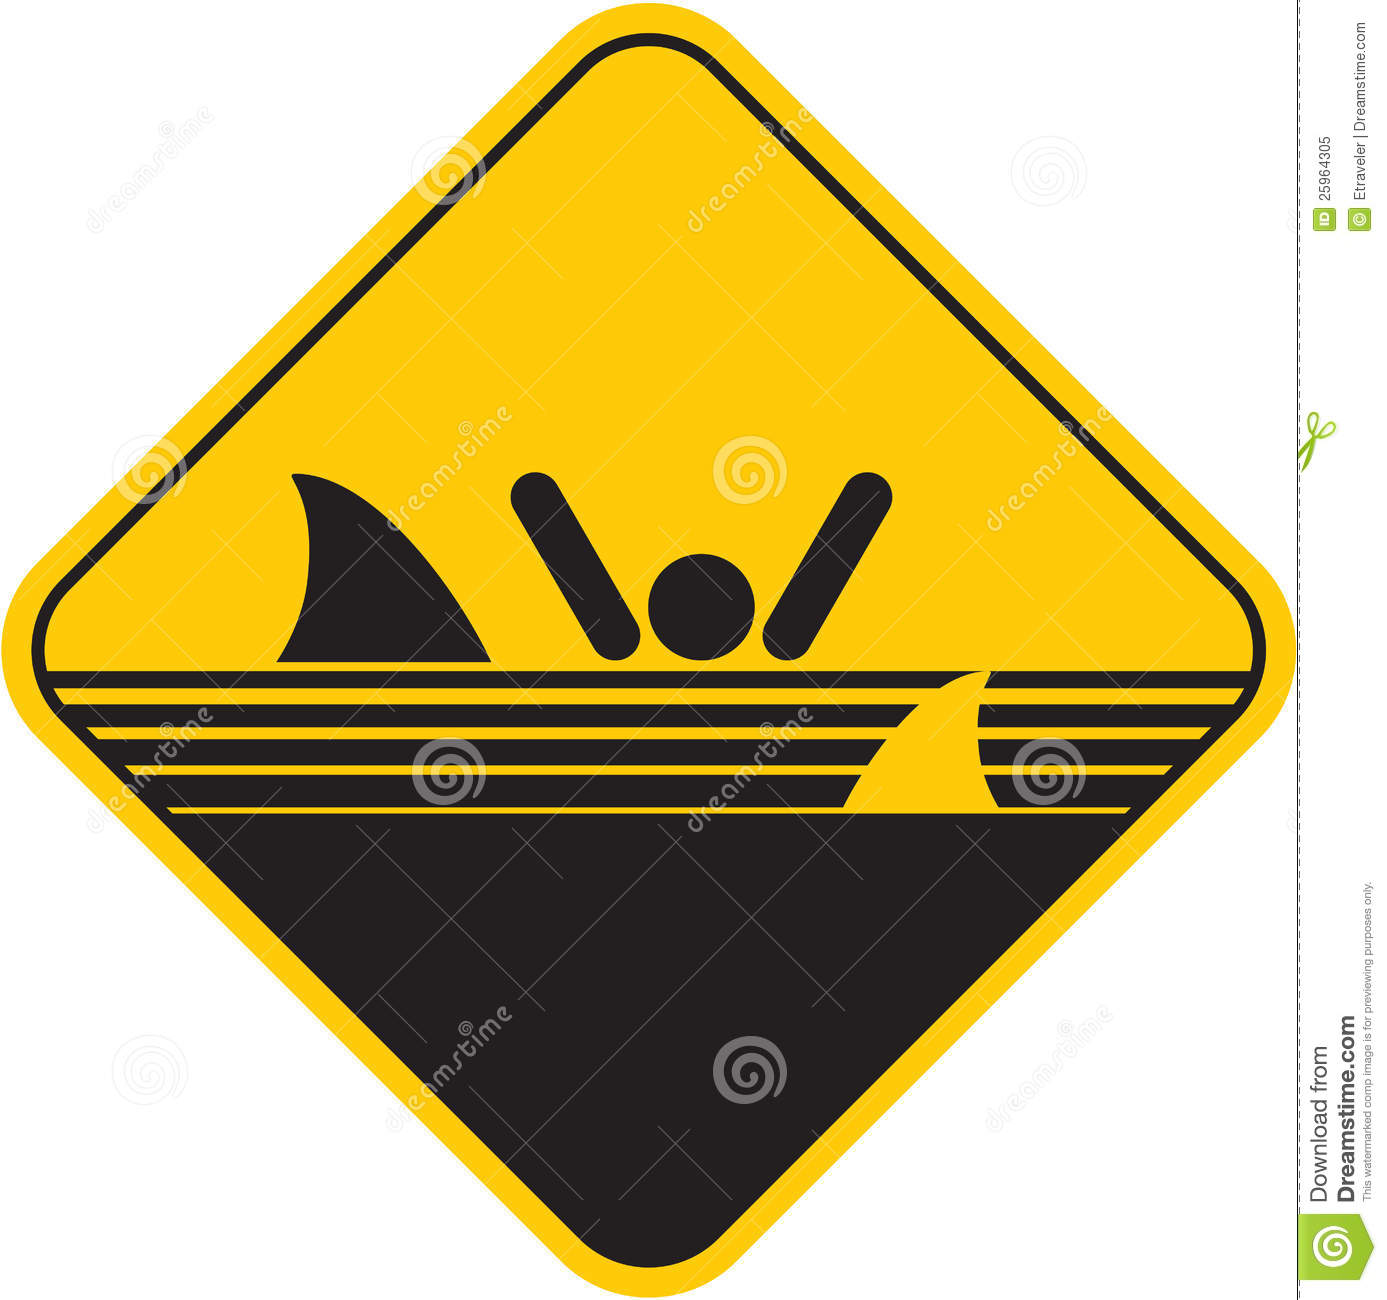 Caution sharks sign stock vector. Image of banner, shark ...